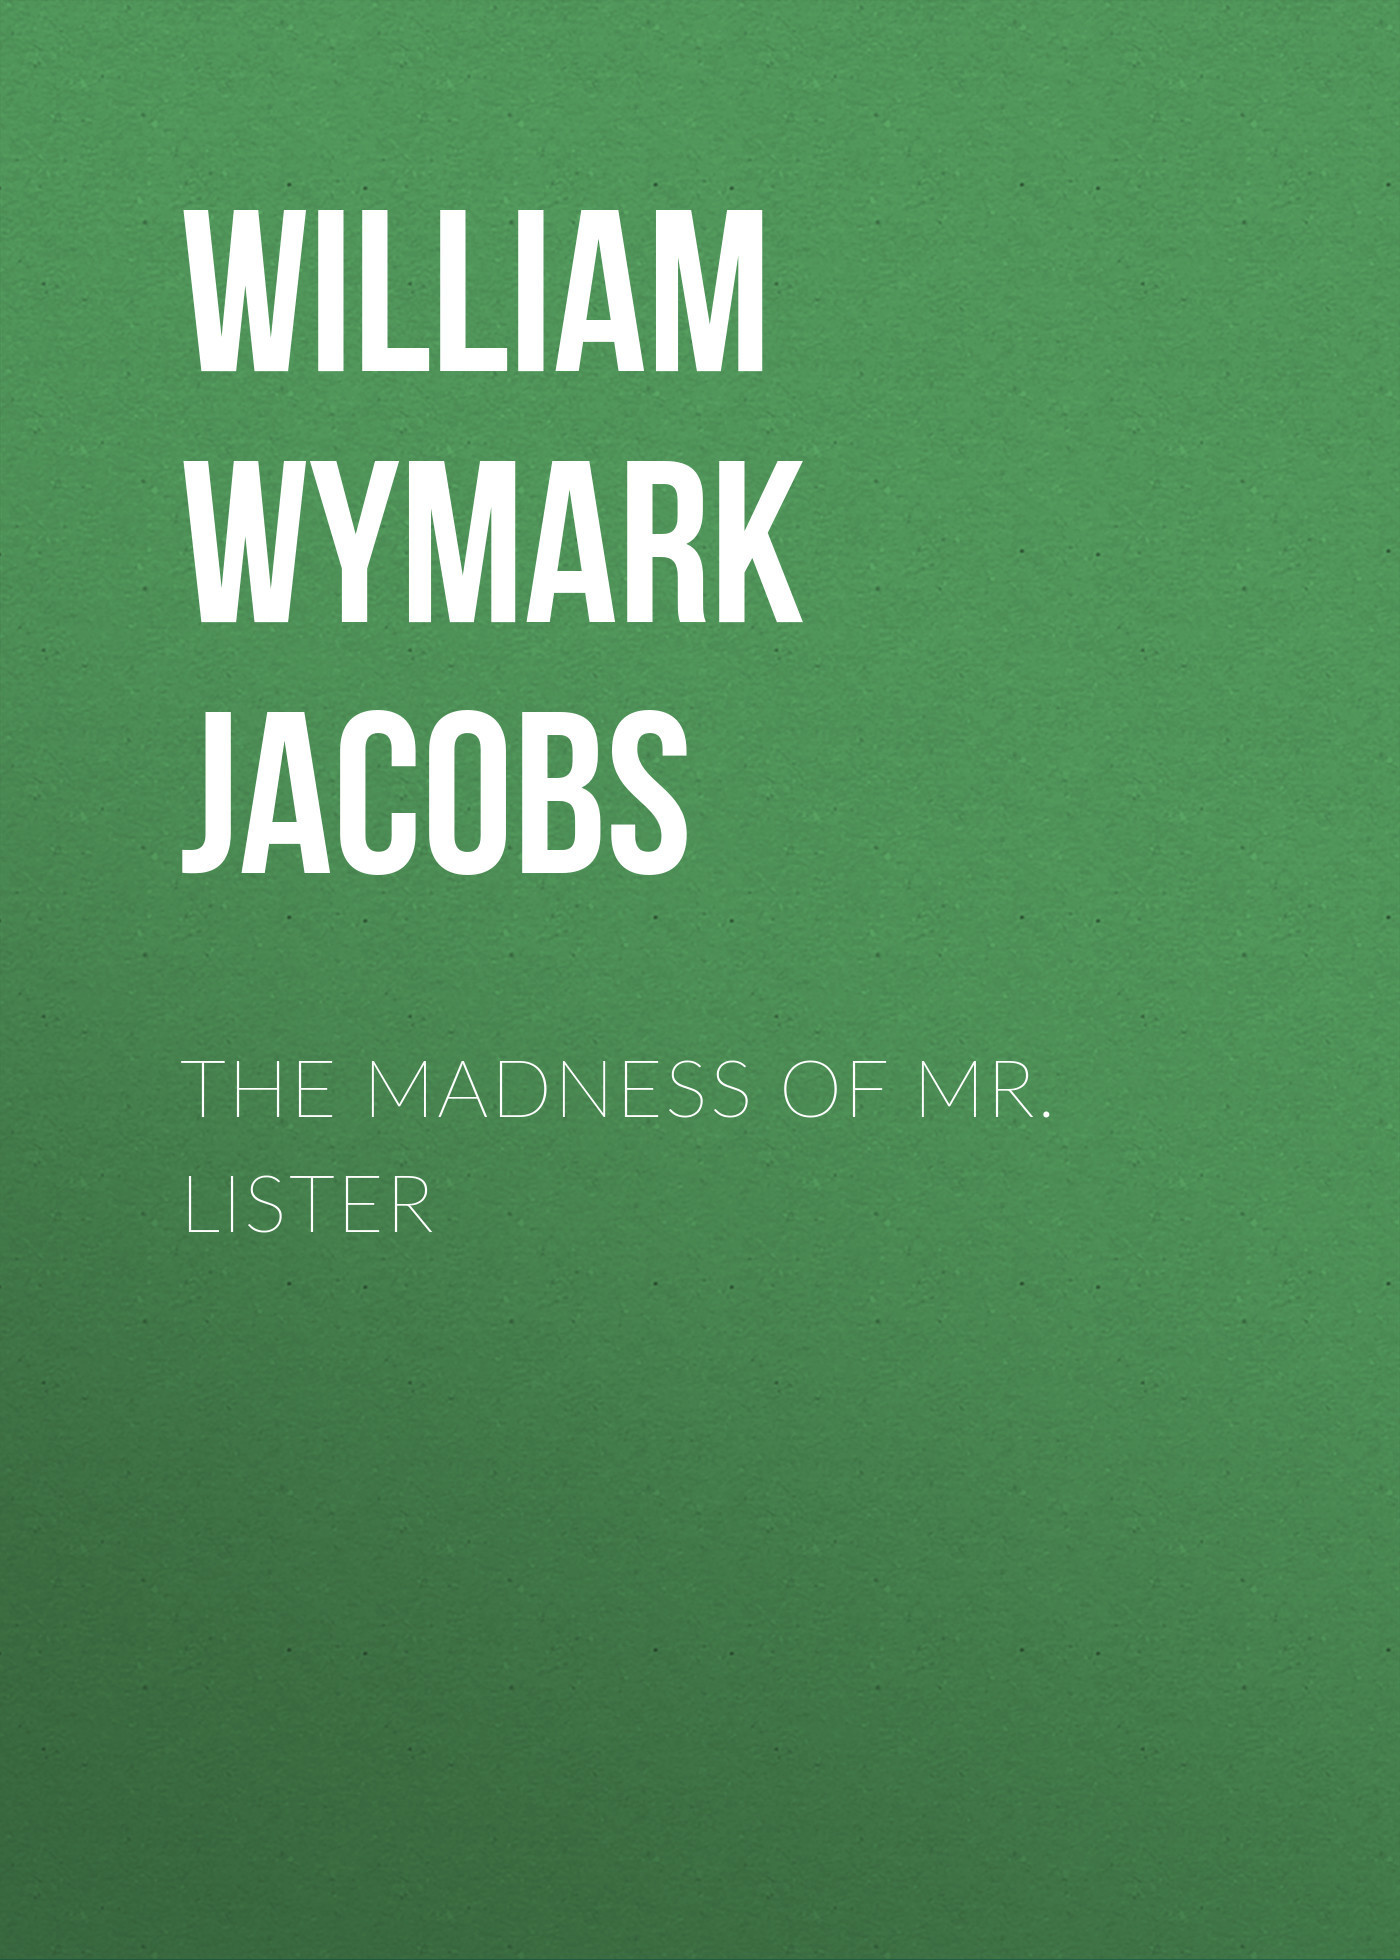 William Wymark Jacobs The Madness of Mr. Lister because of mr terupt